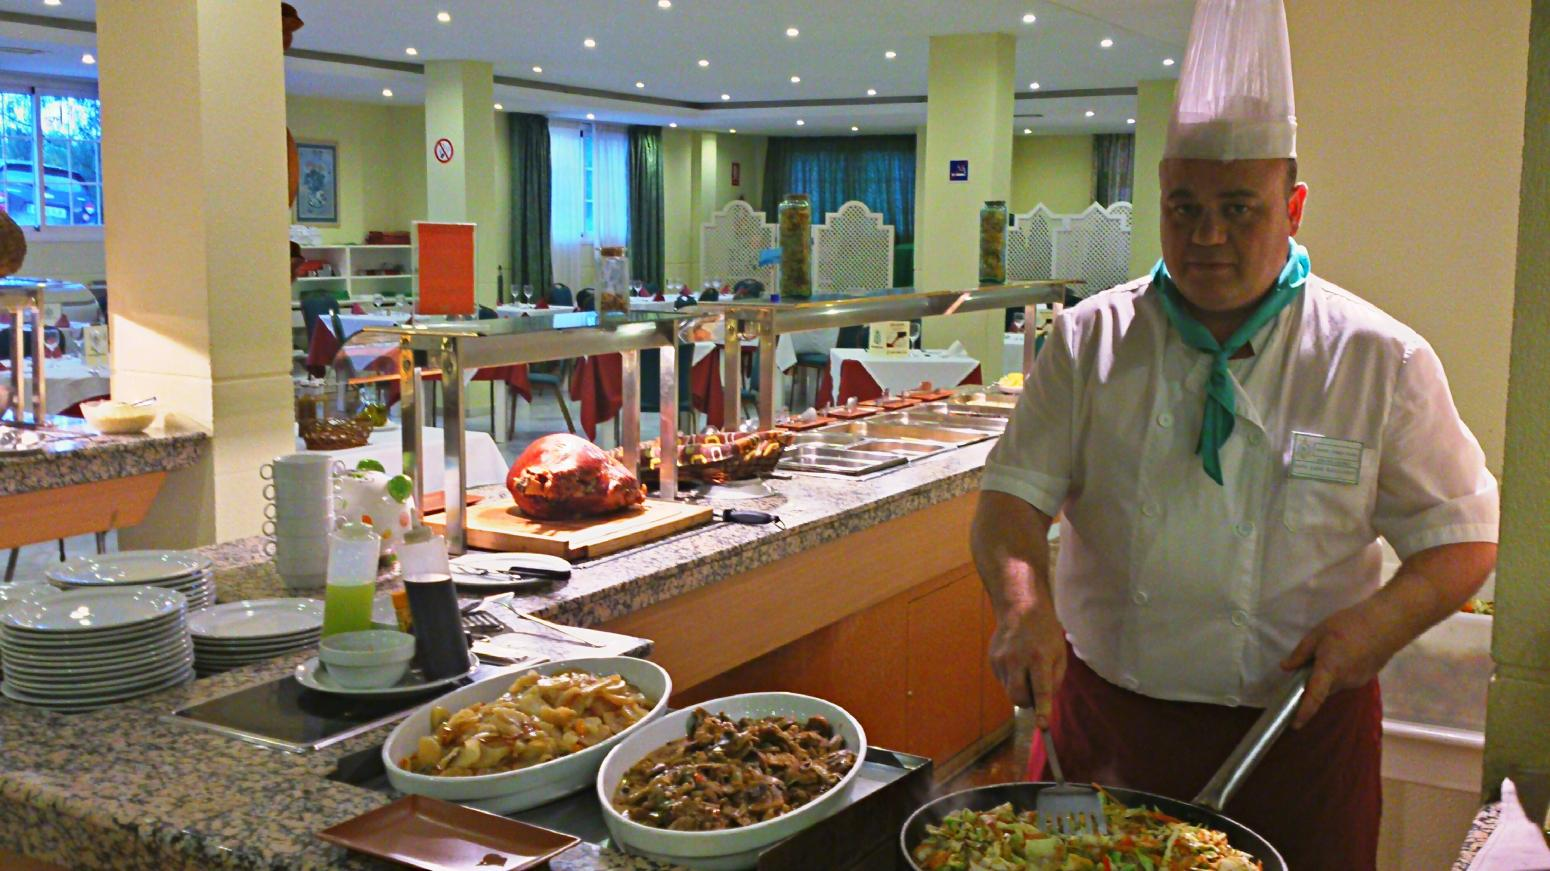 Hotel Nerja Club (Nerja). Show cooking